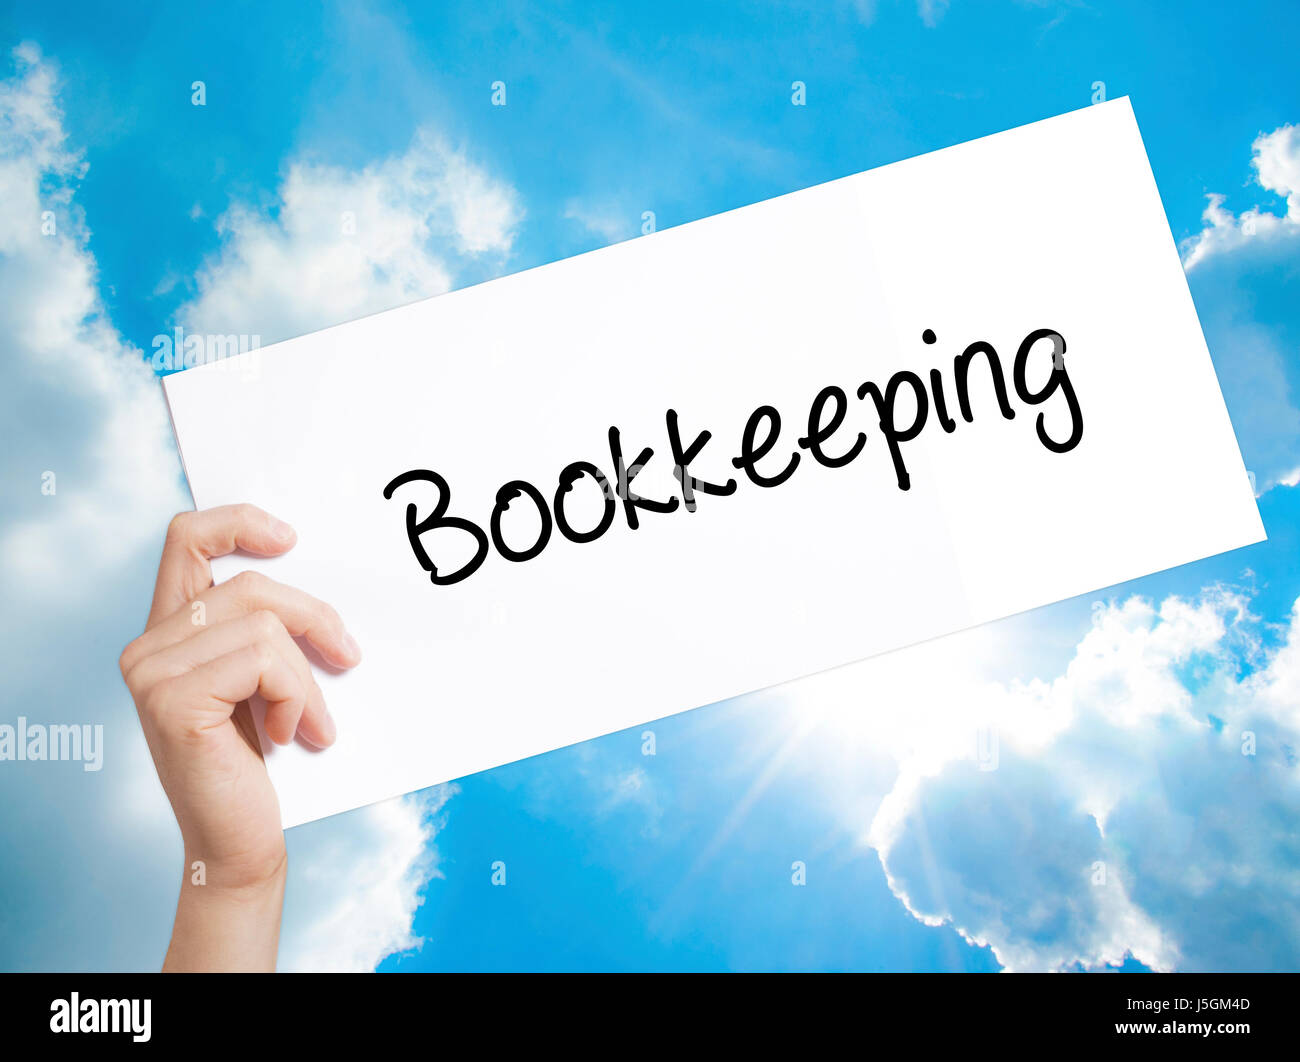 Bookkeeping Sign on white paper. Man Hand Holding Paper with text. Isolated on sky background.  Business concept. - Stock Image